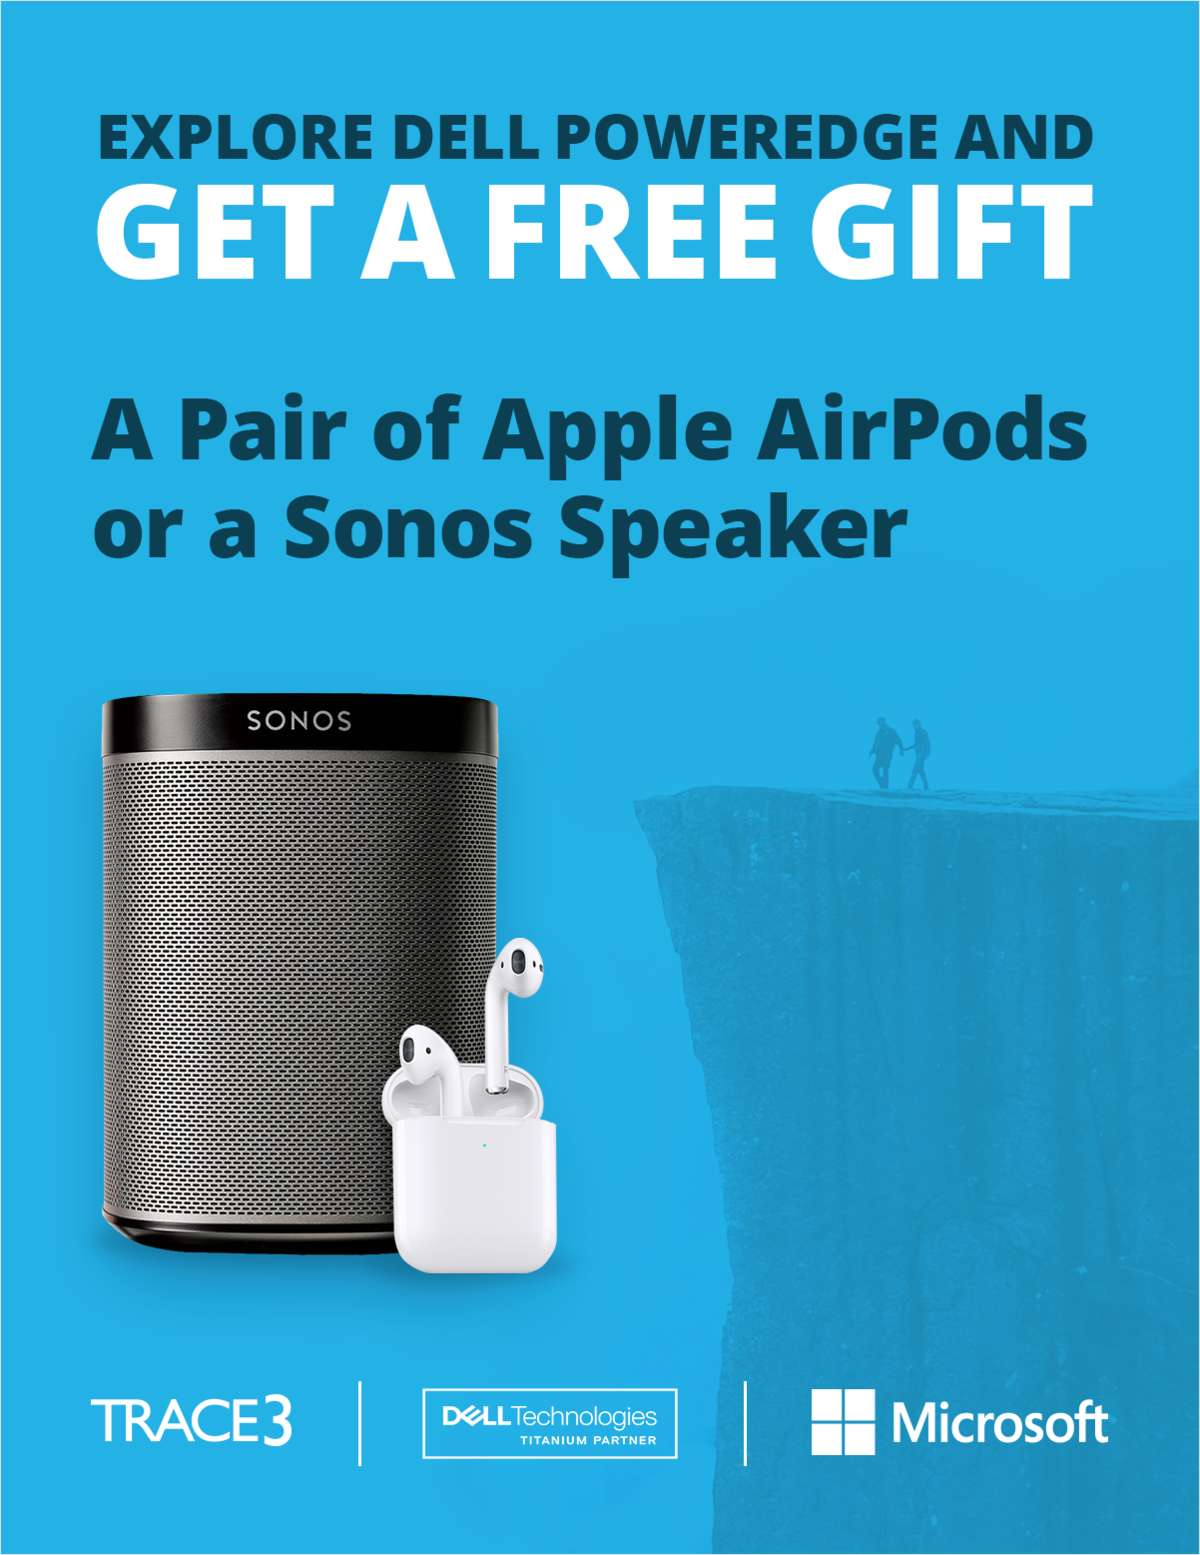 Explore Dell PowerEdge and Get a Free Pair of Apple AirPods or a Sonos Speaker